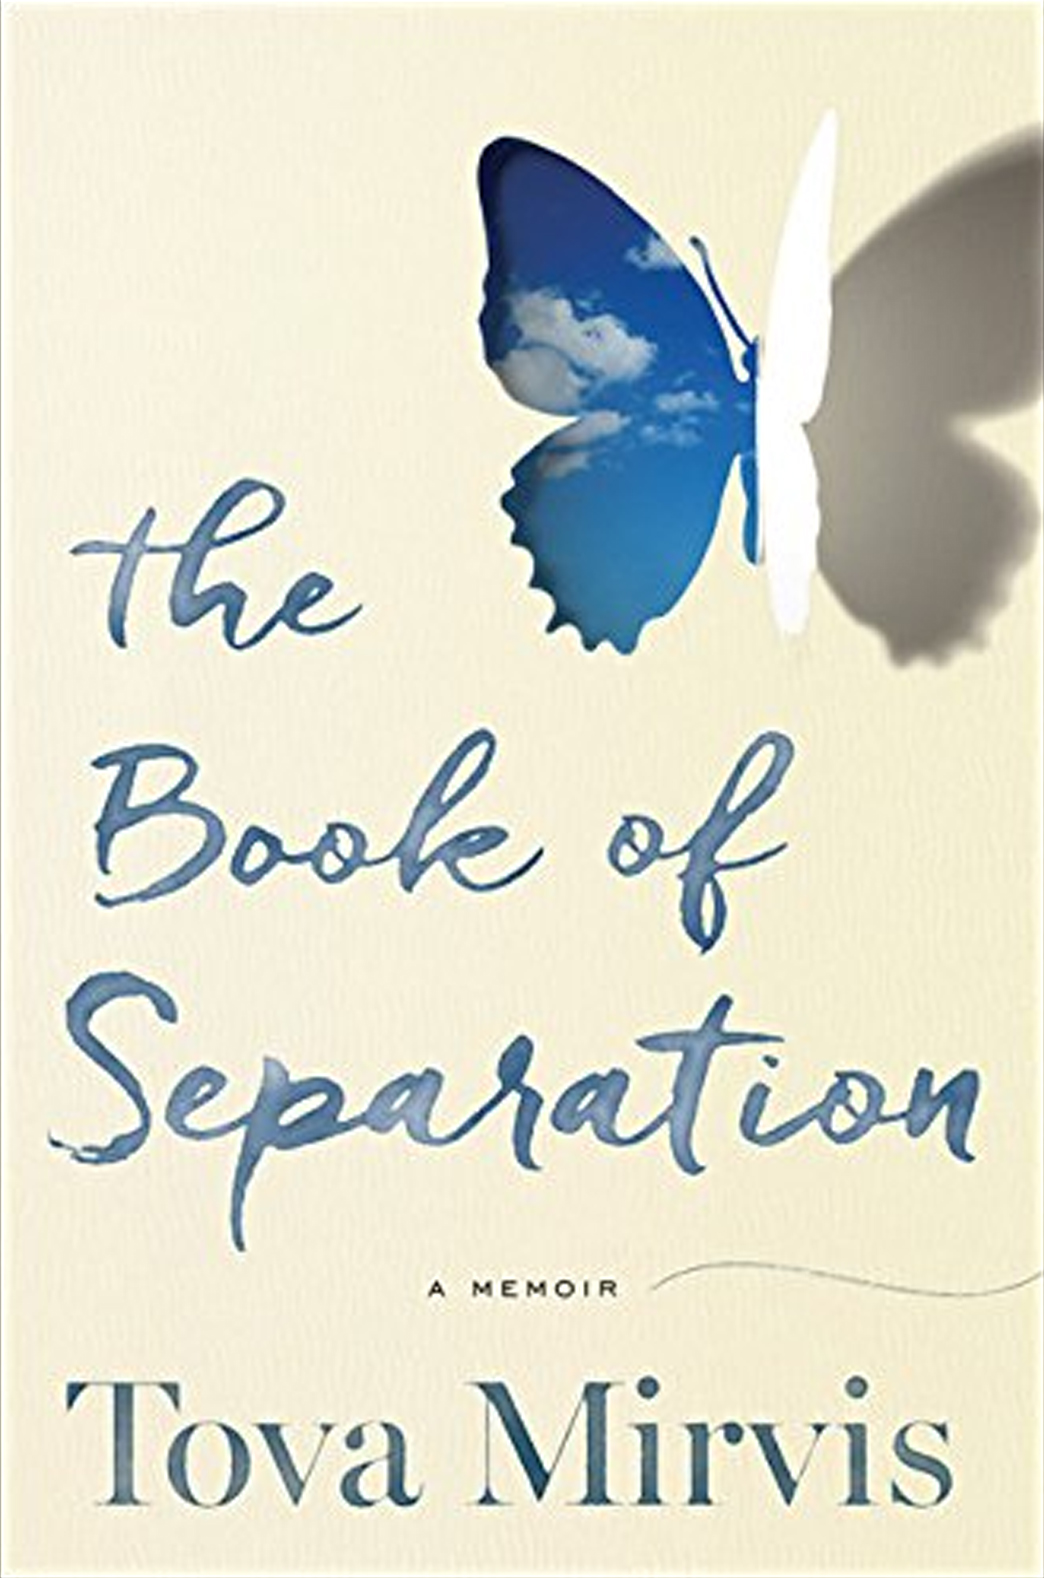 kathleen stone writer booklab literary salon the book of separation tova mirvis